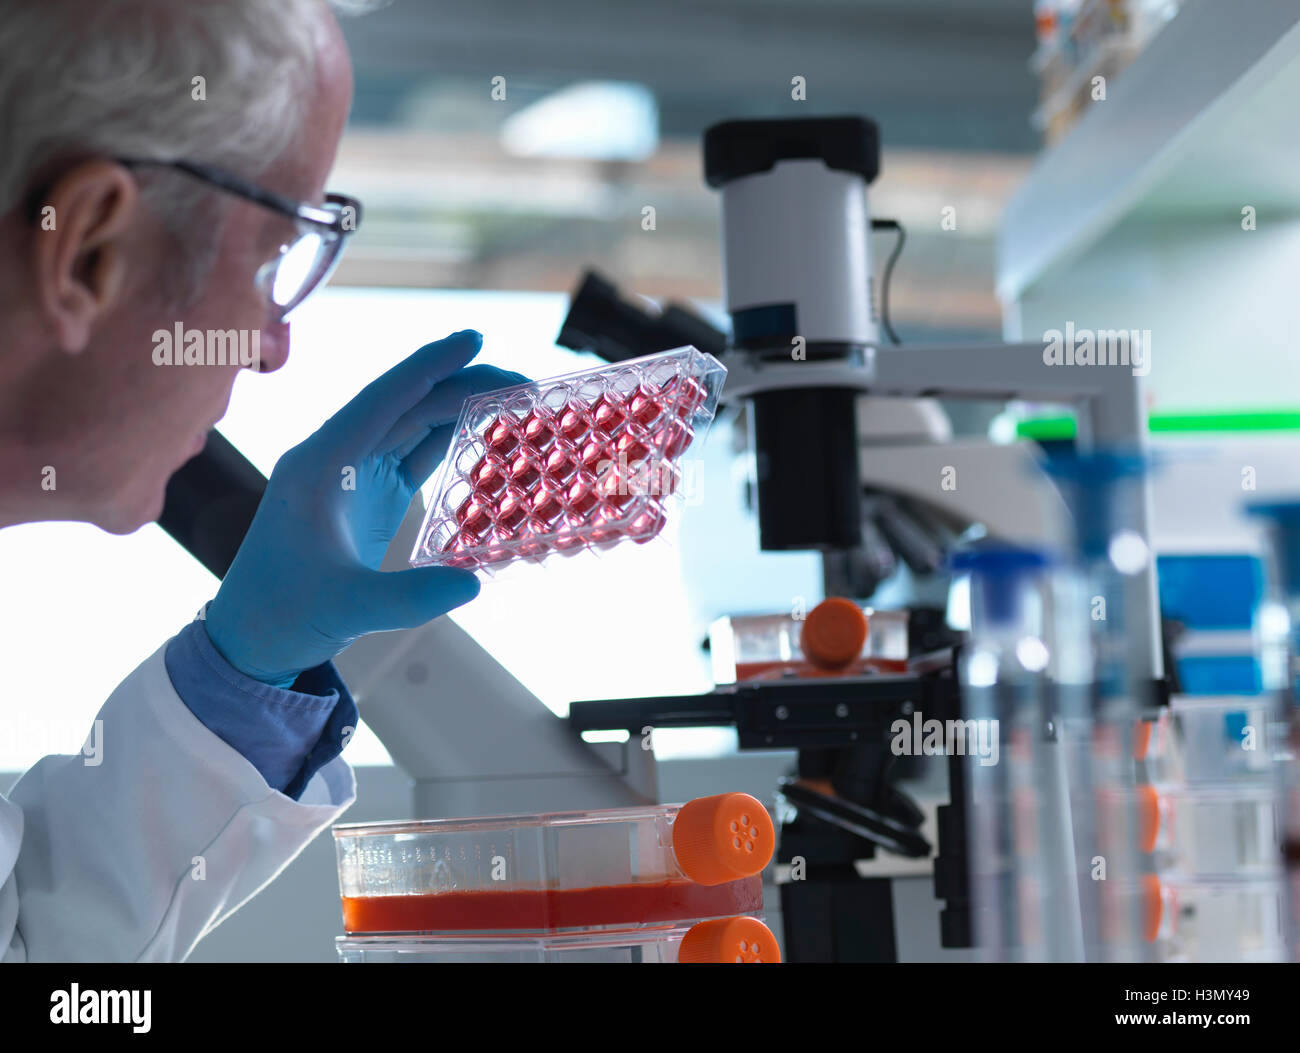 Scientist holding a multiwell plate containing growth medium commonly used in biological research to maintain and - Stock Image